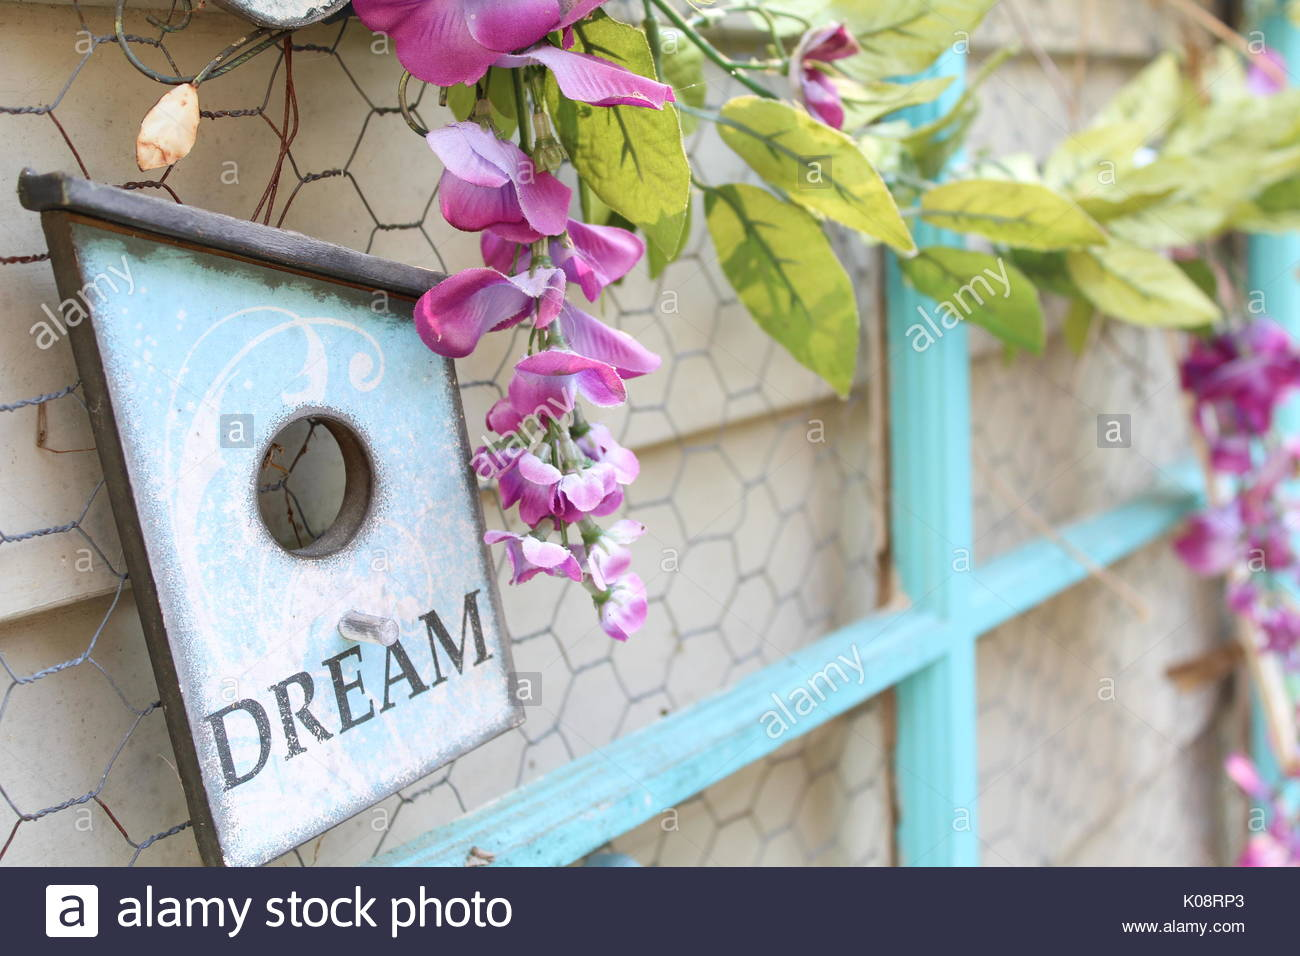 Dream Vintage Window - Stock Image